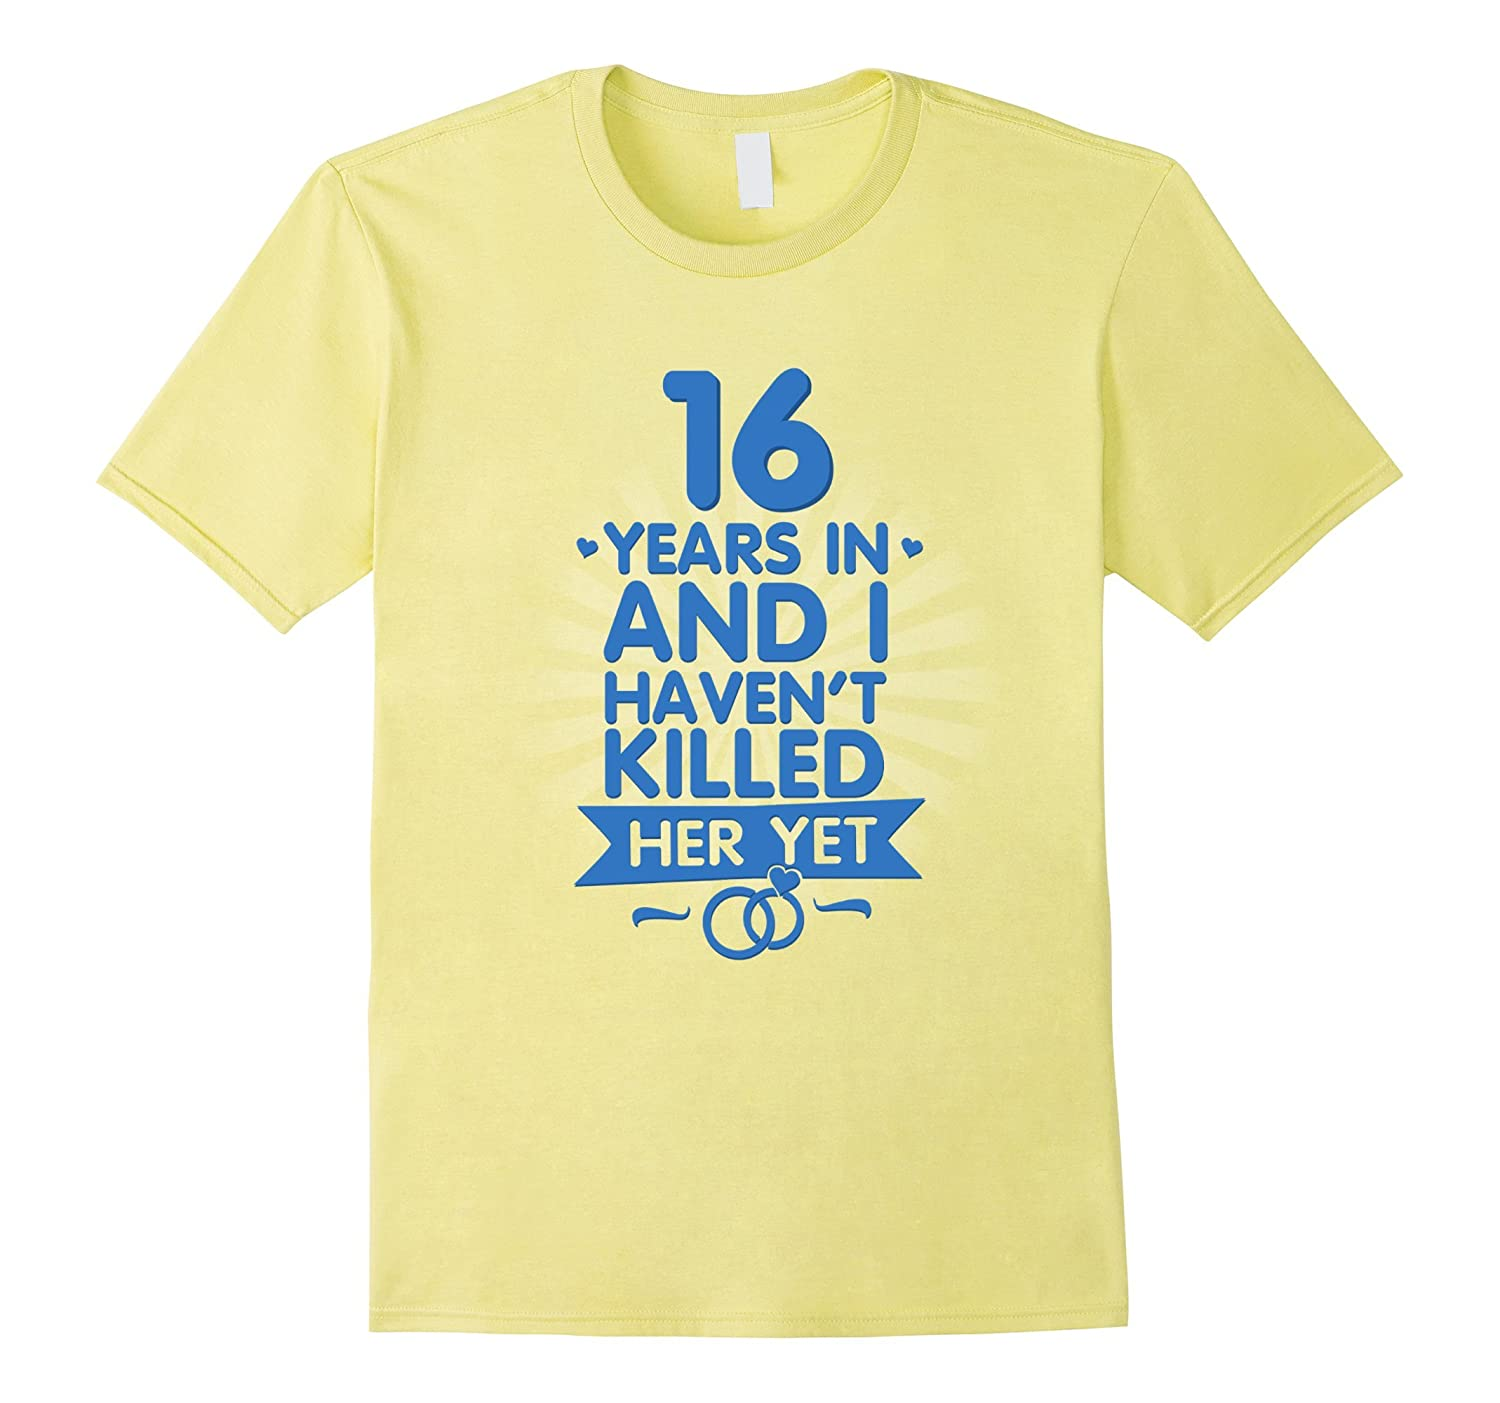 What Is The 16th Wedding Anniversary Gift: 16 Years Of Marriage Shirt 16th Anniversary Gift For